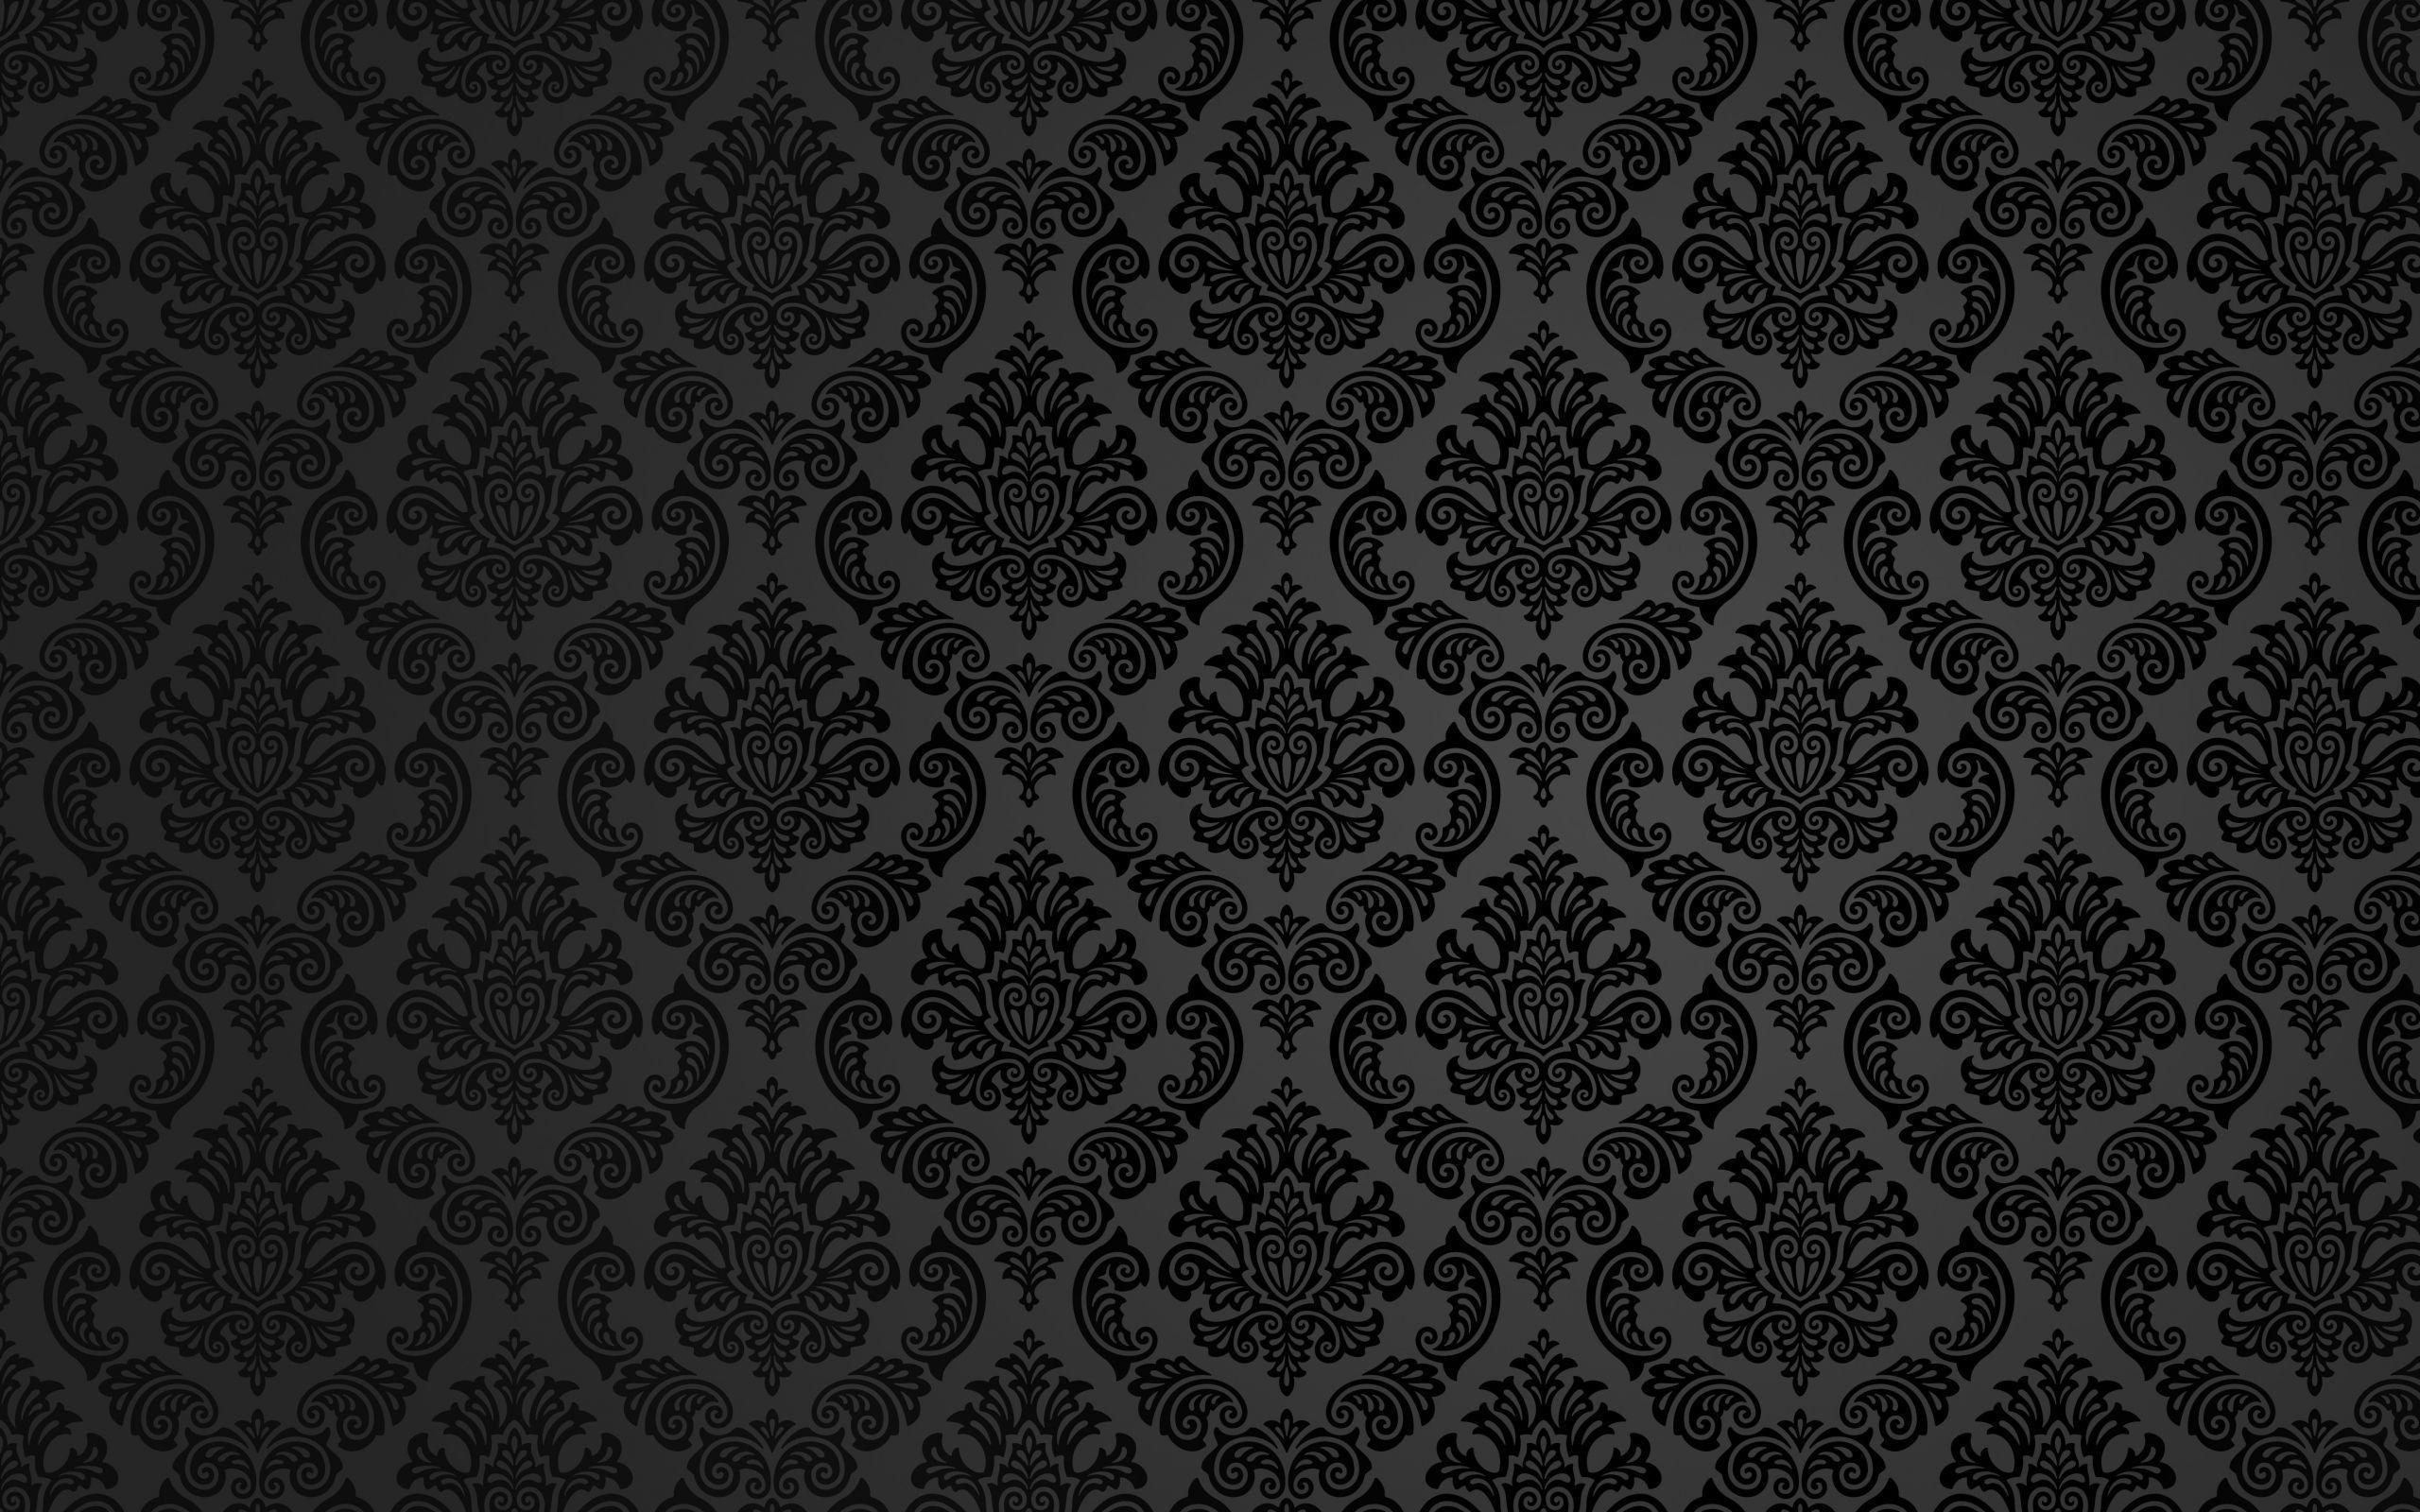 cantik background batik hitam putih hd beauty glamorous cantik background batik hitam putih hd